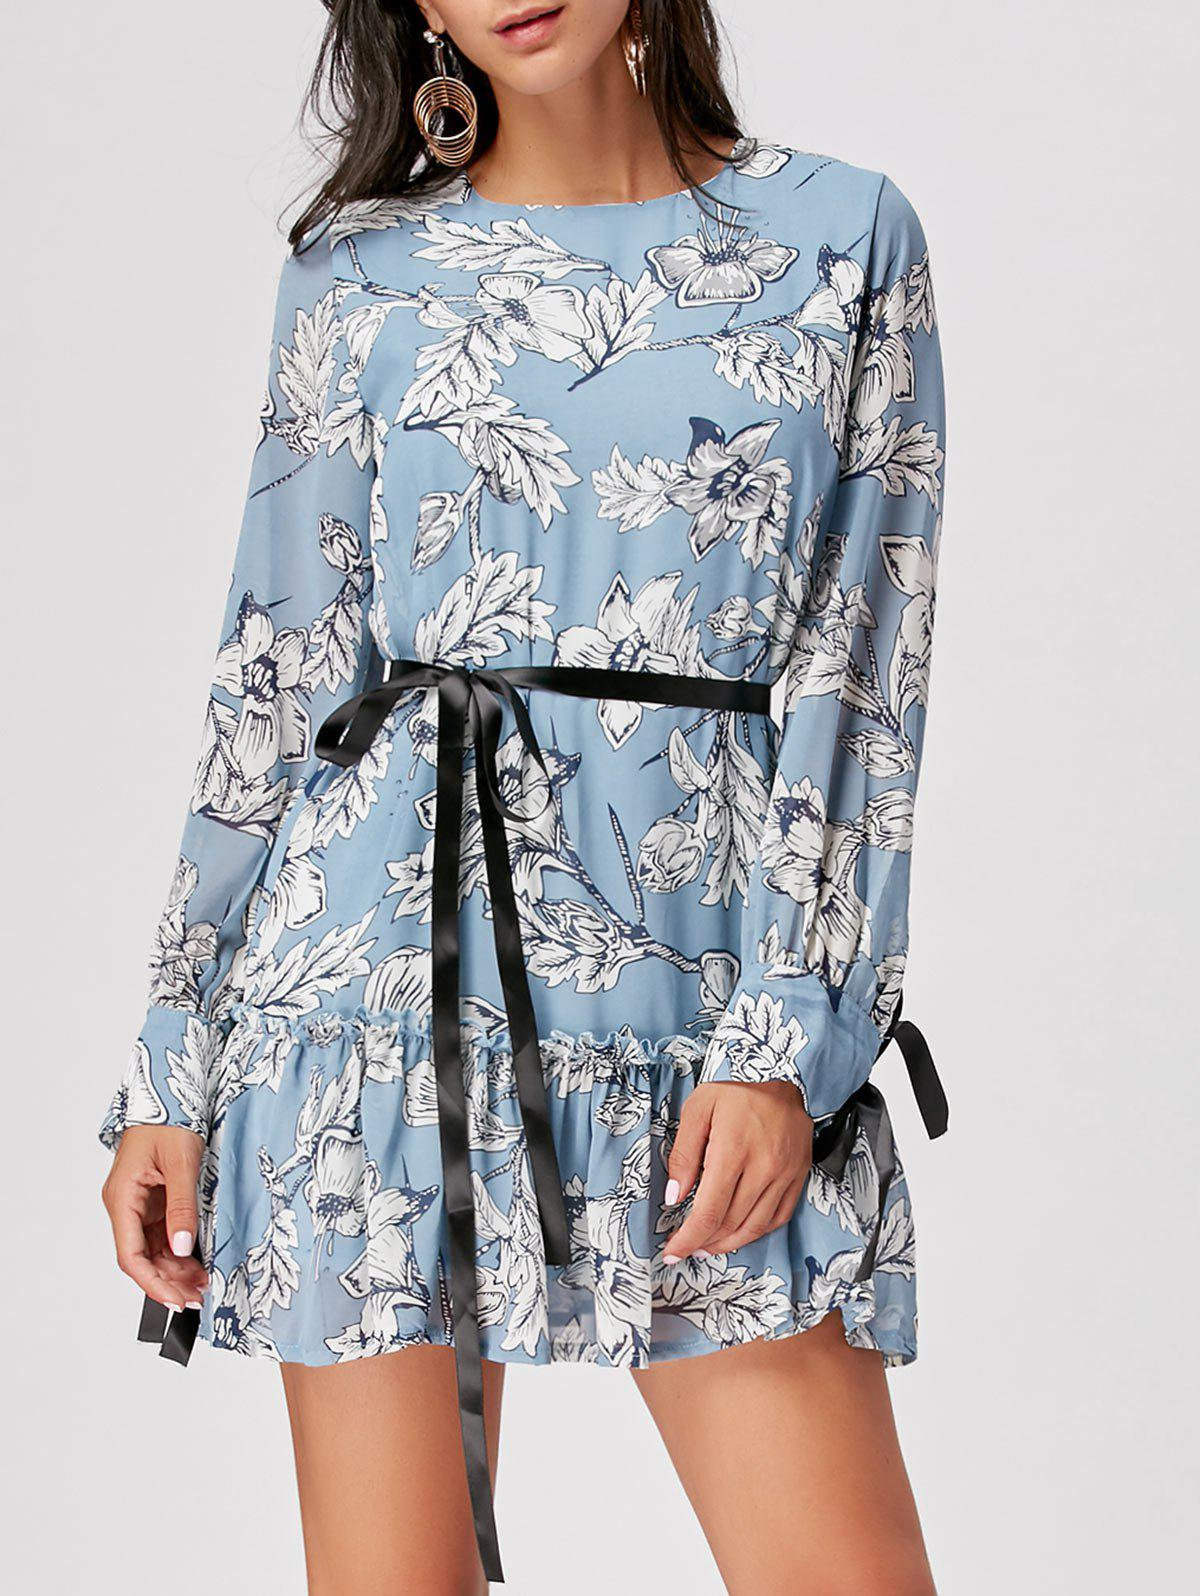 Long Sleeve Chiffon Floral Dress - CLOUDY S